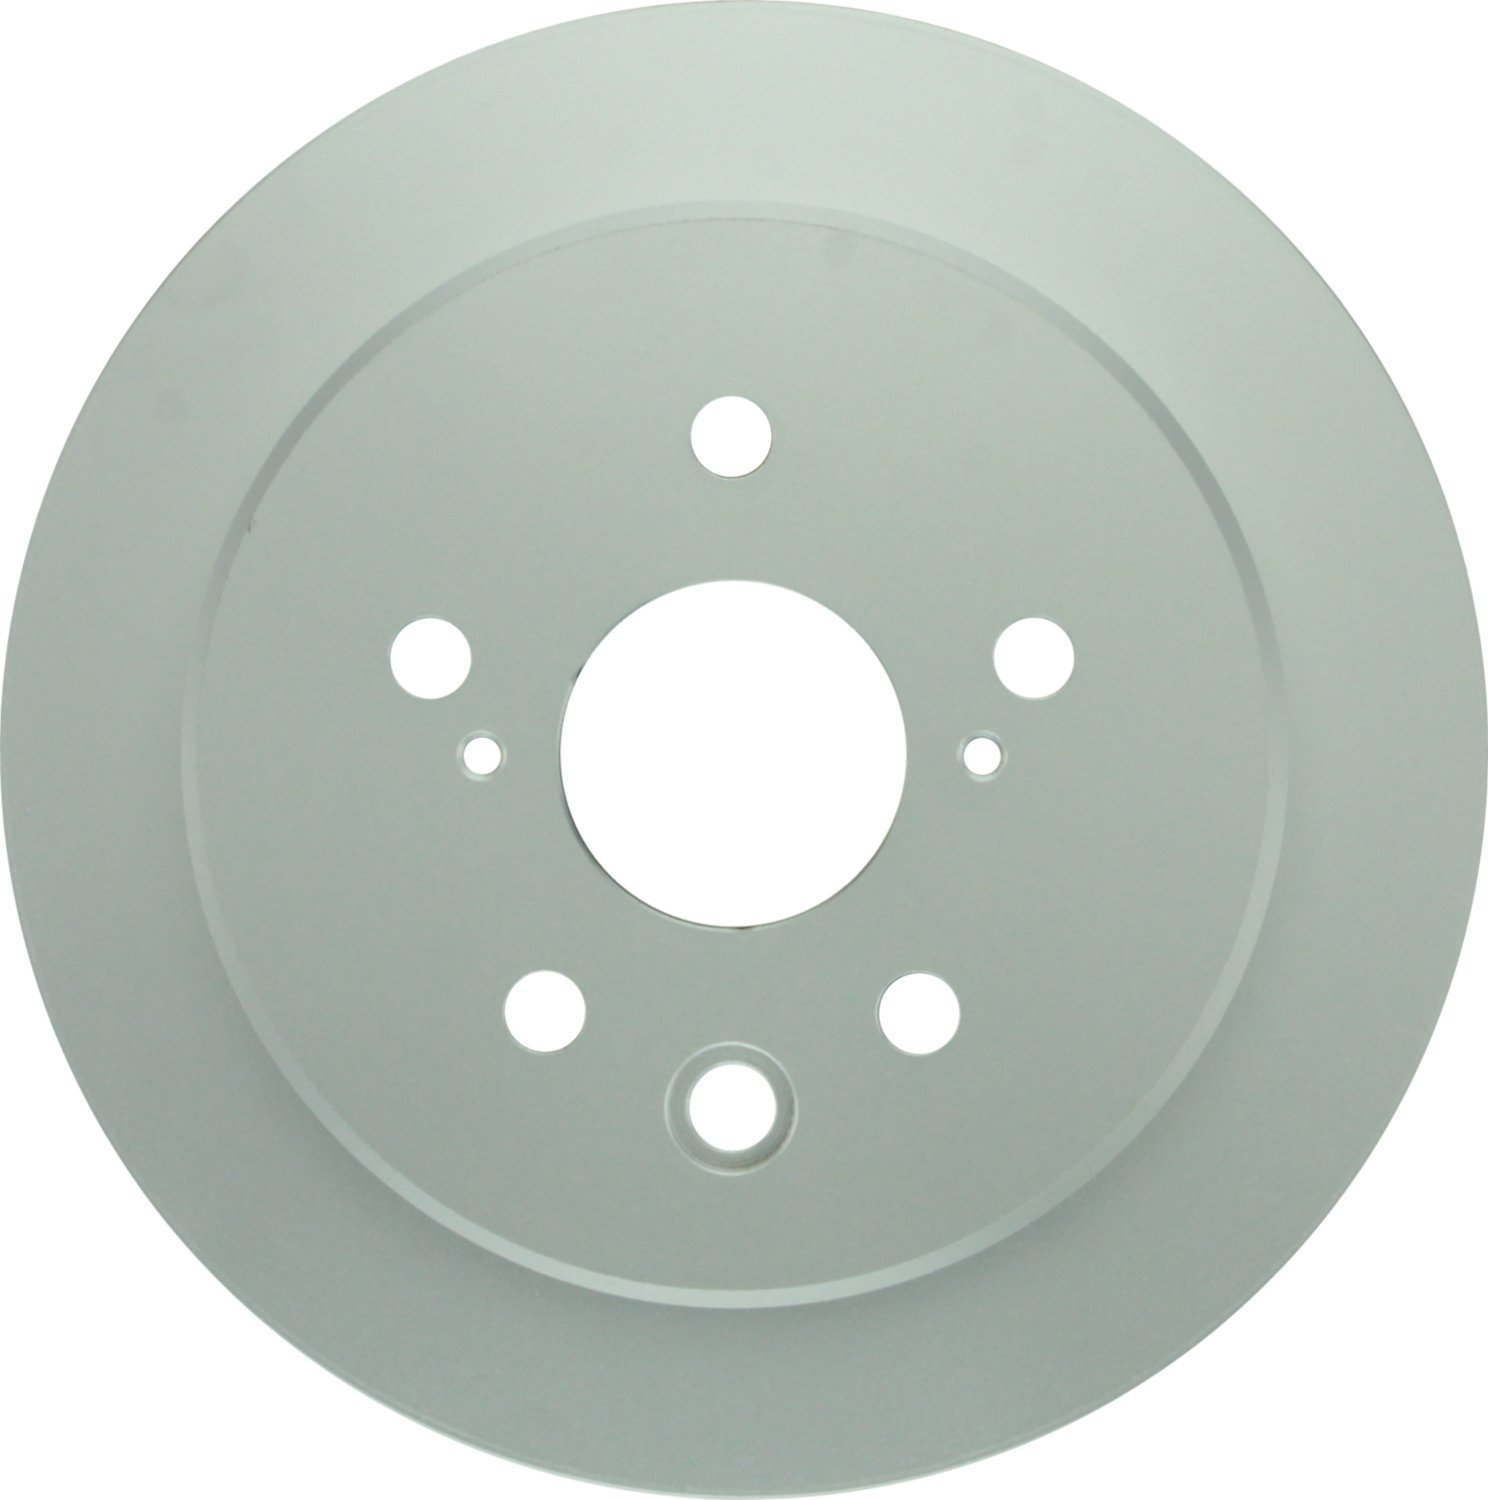 Bosch 50011461 QuietCast Premium Disc Brake Rotor, Rear